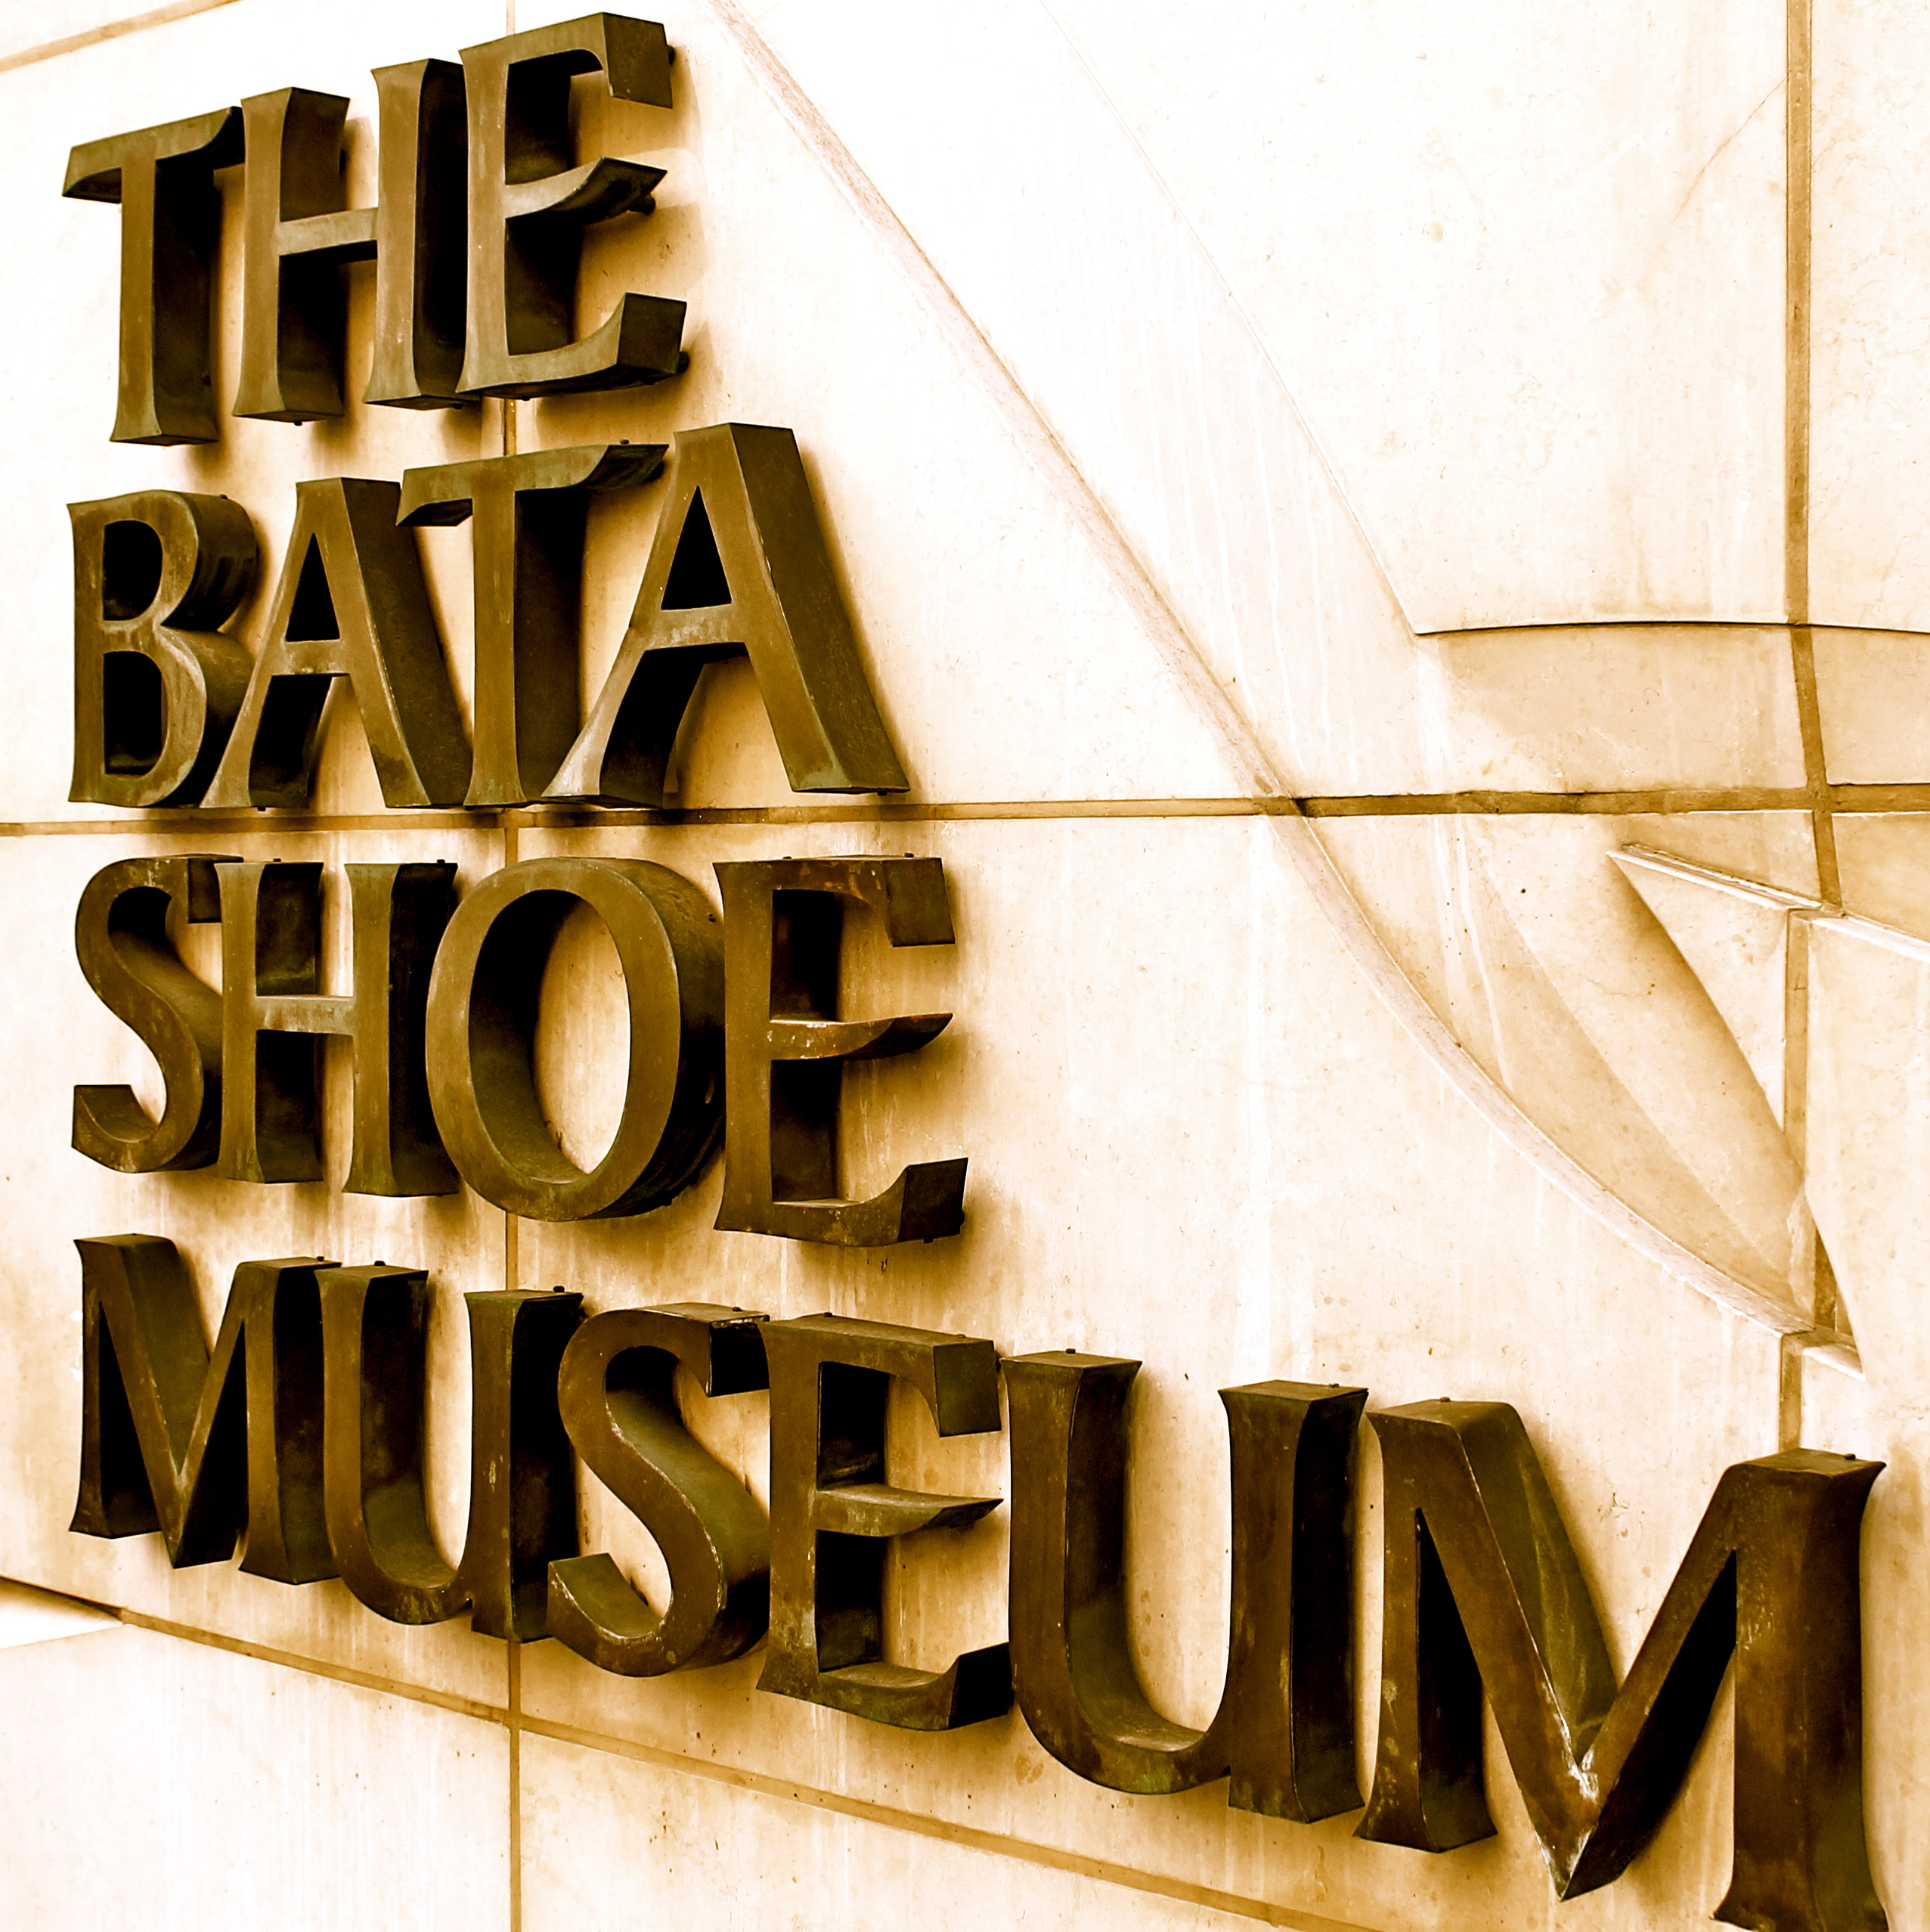 Bata Shoe Museum A collection of shoes from over 4500